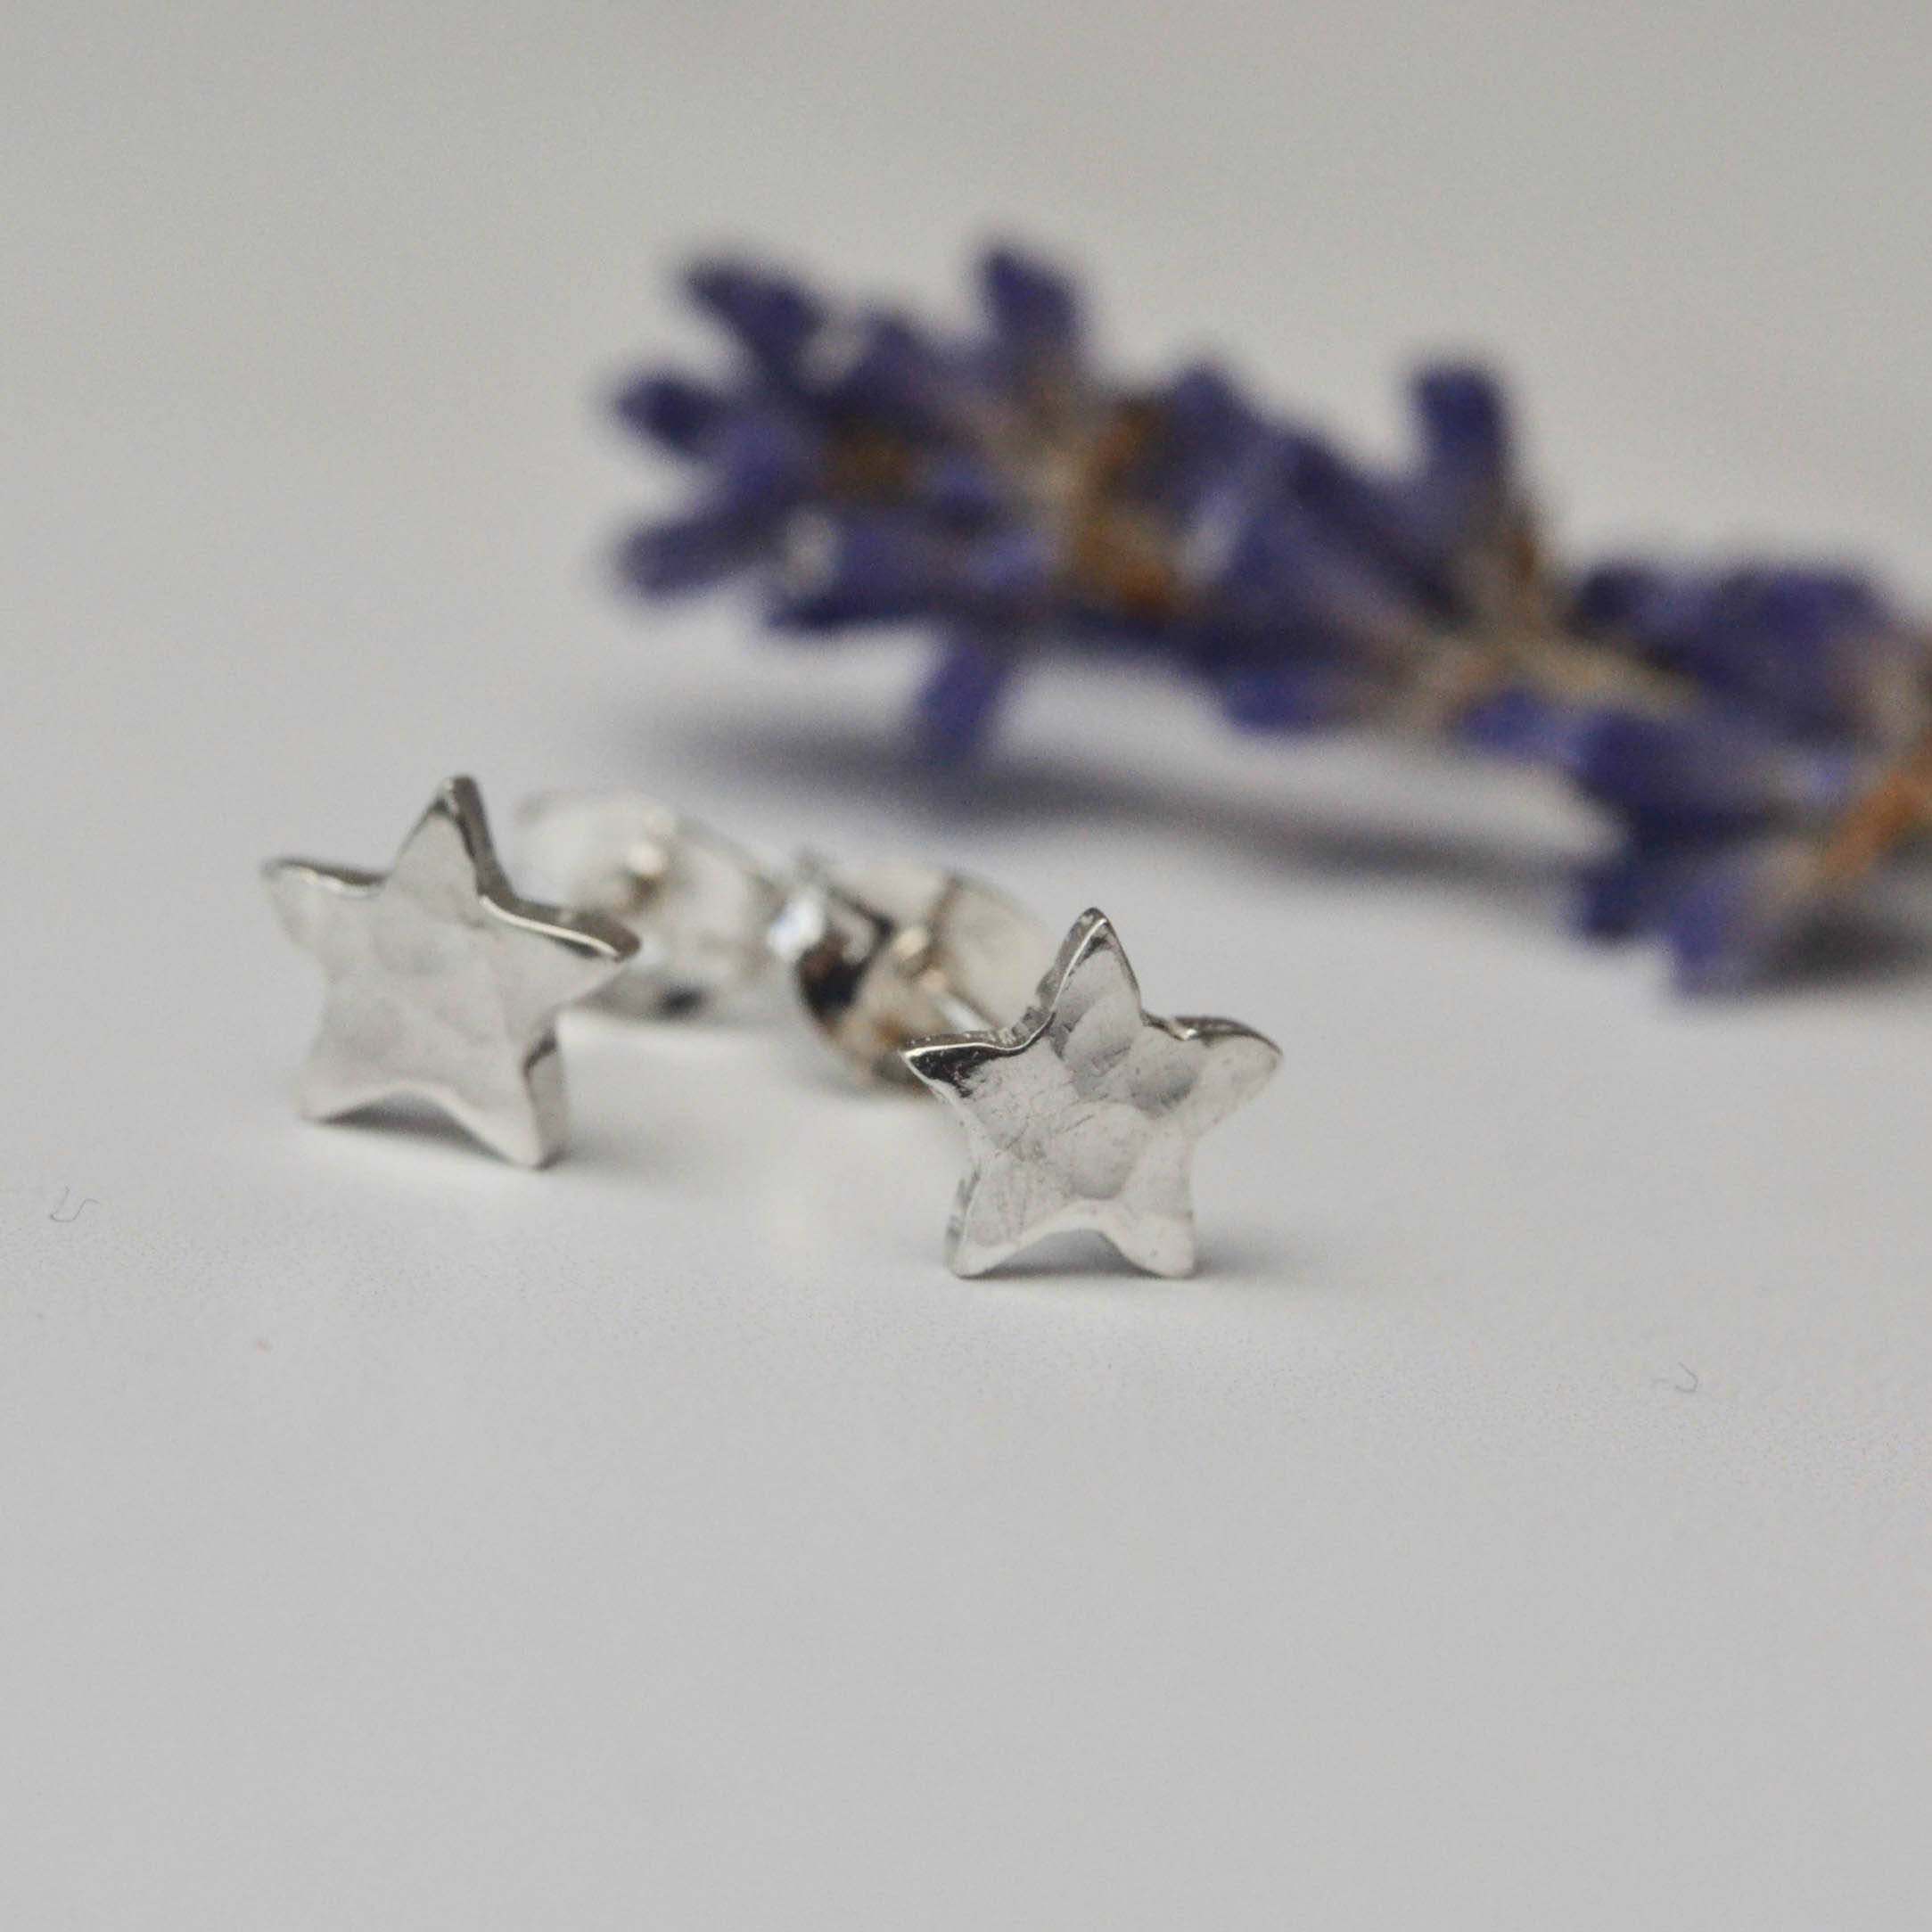 Teeny tiny silver star studs  These are the ones that I get my mum to make my friends for their birthdays. They're small enough to get away with wearing for school, but different to the usual earrings.